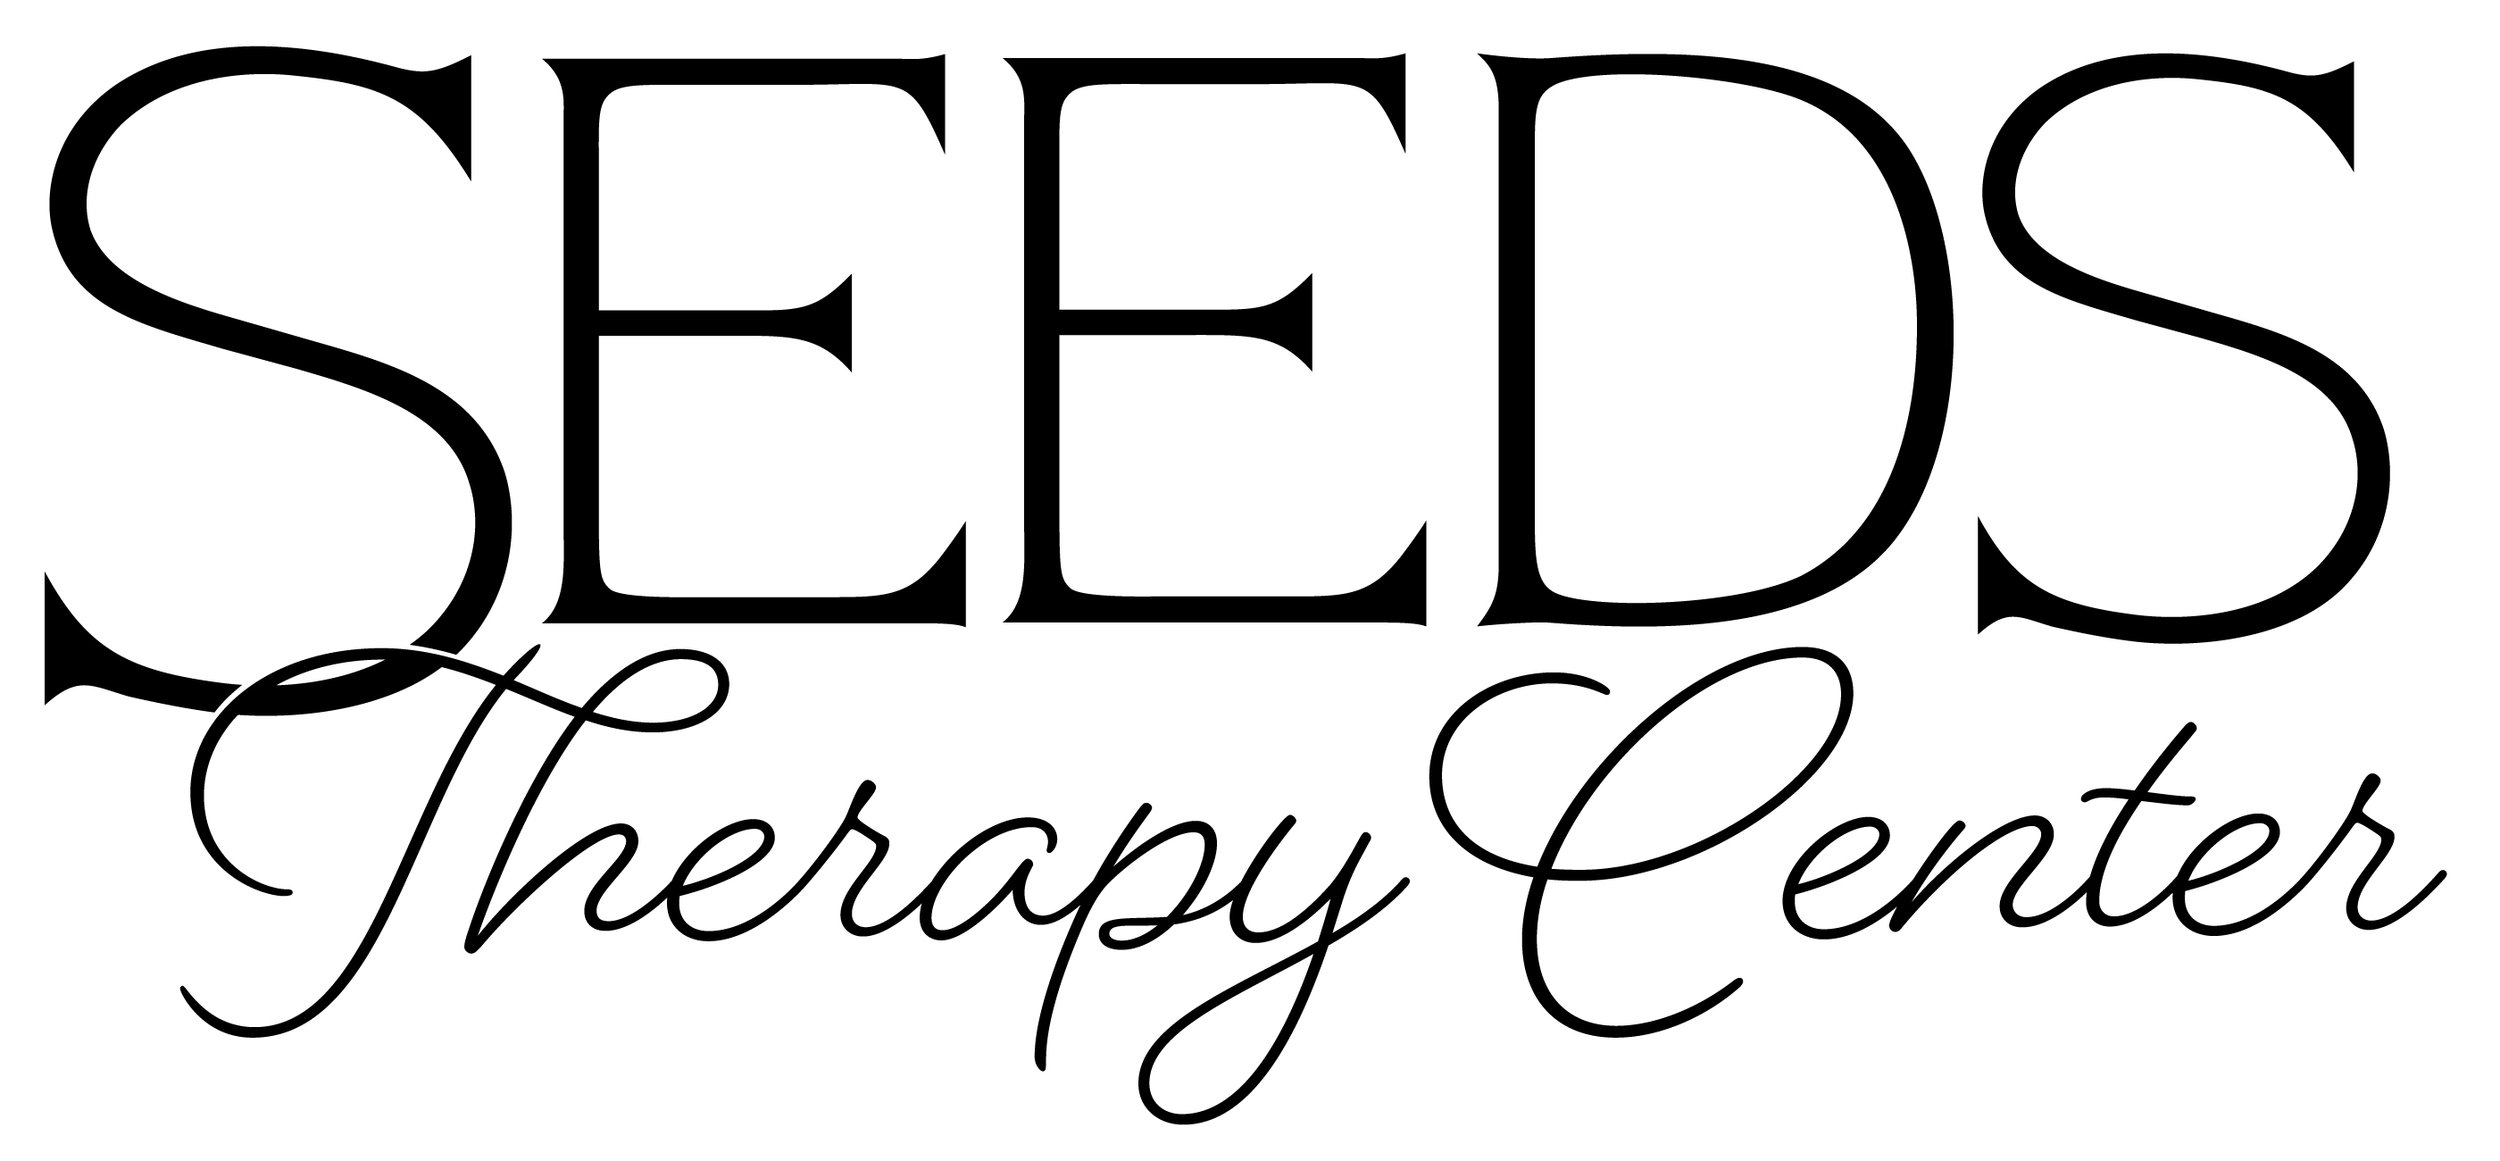 Seeds Therapy Center Logo.jpg